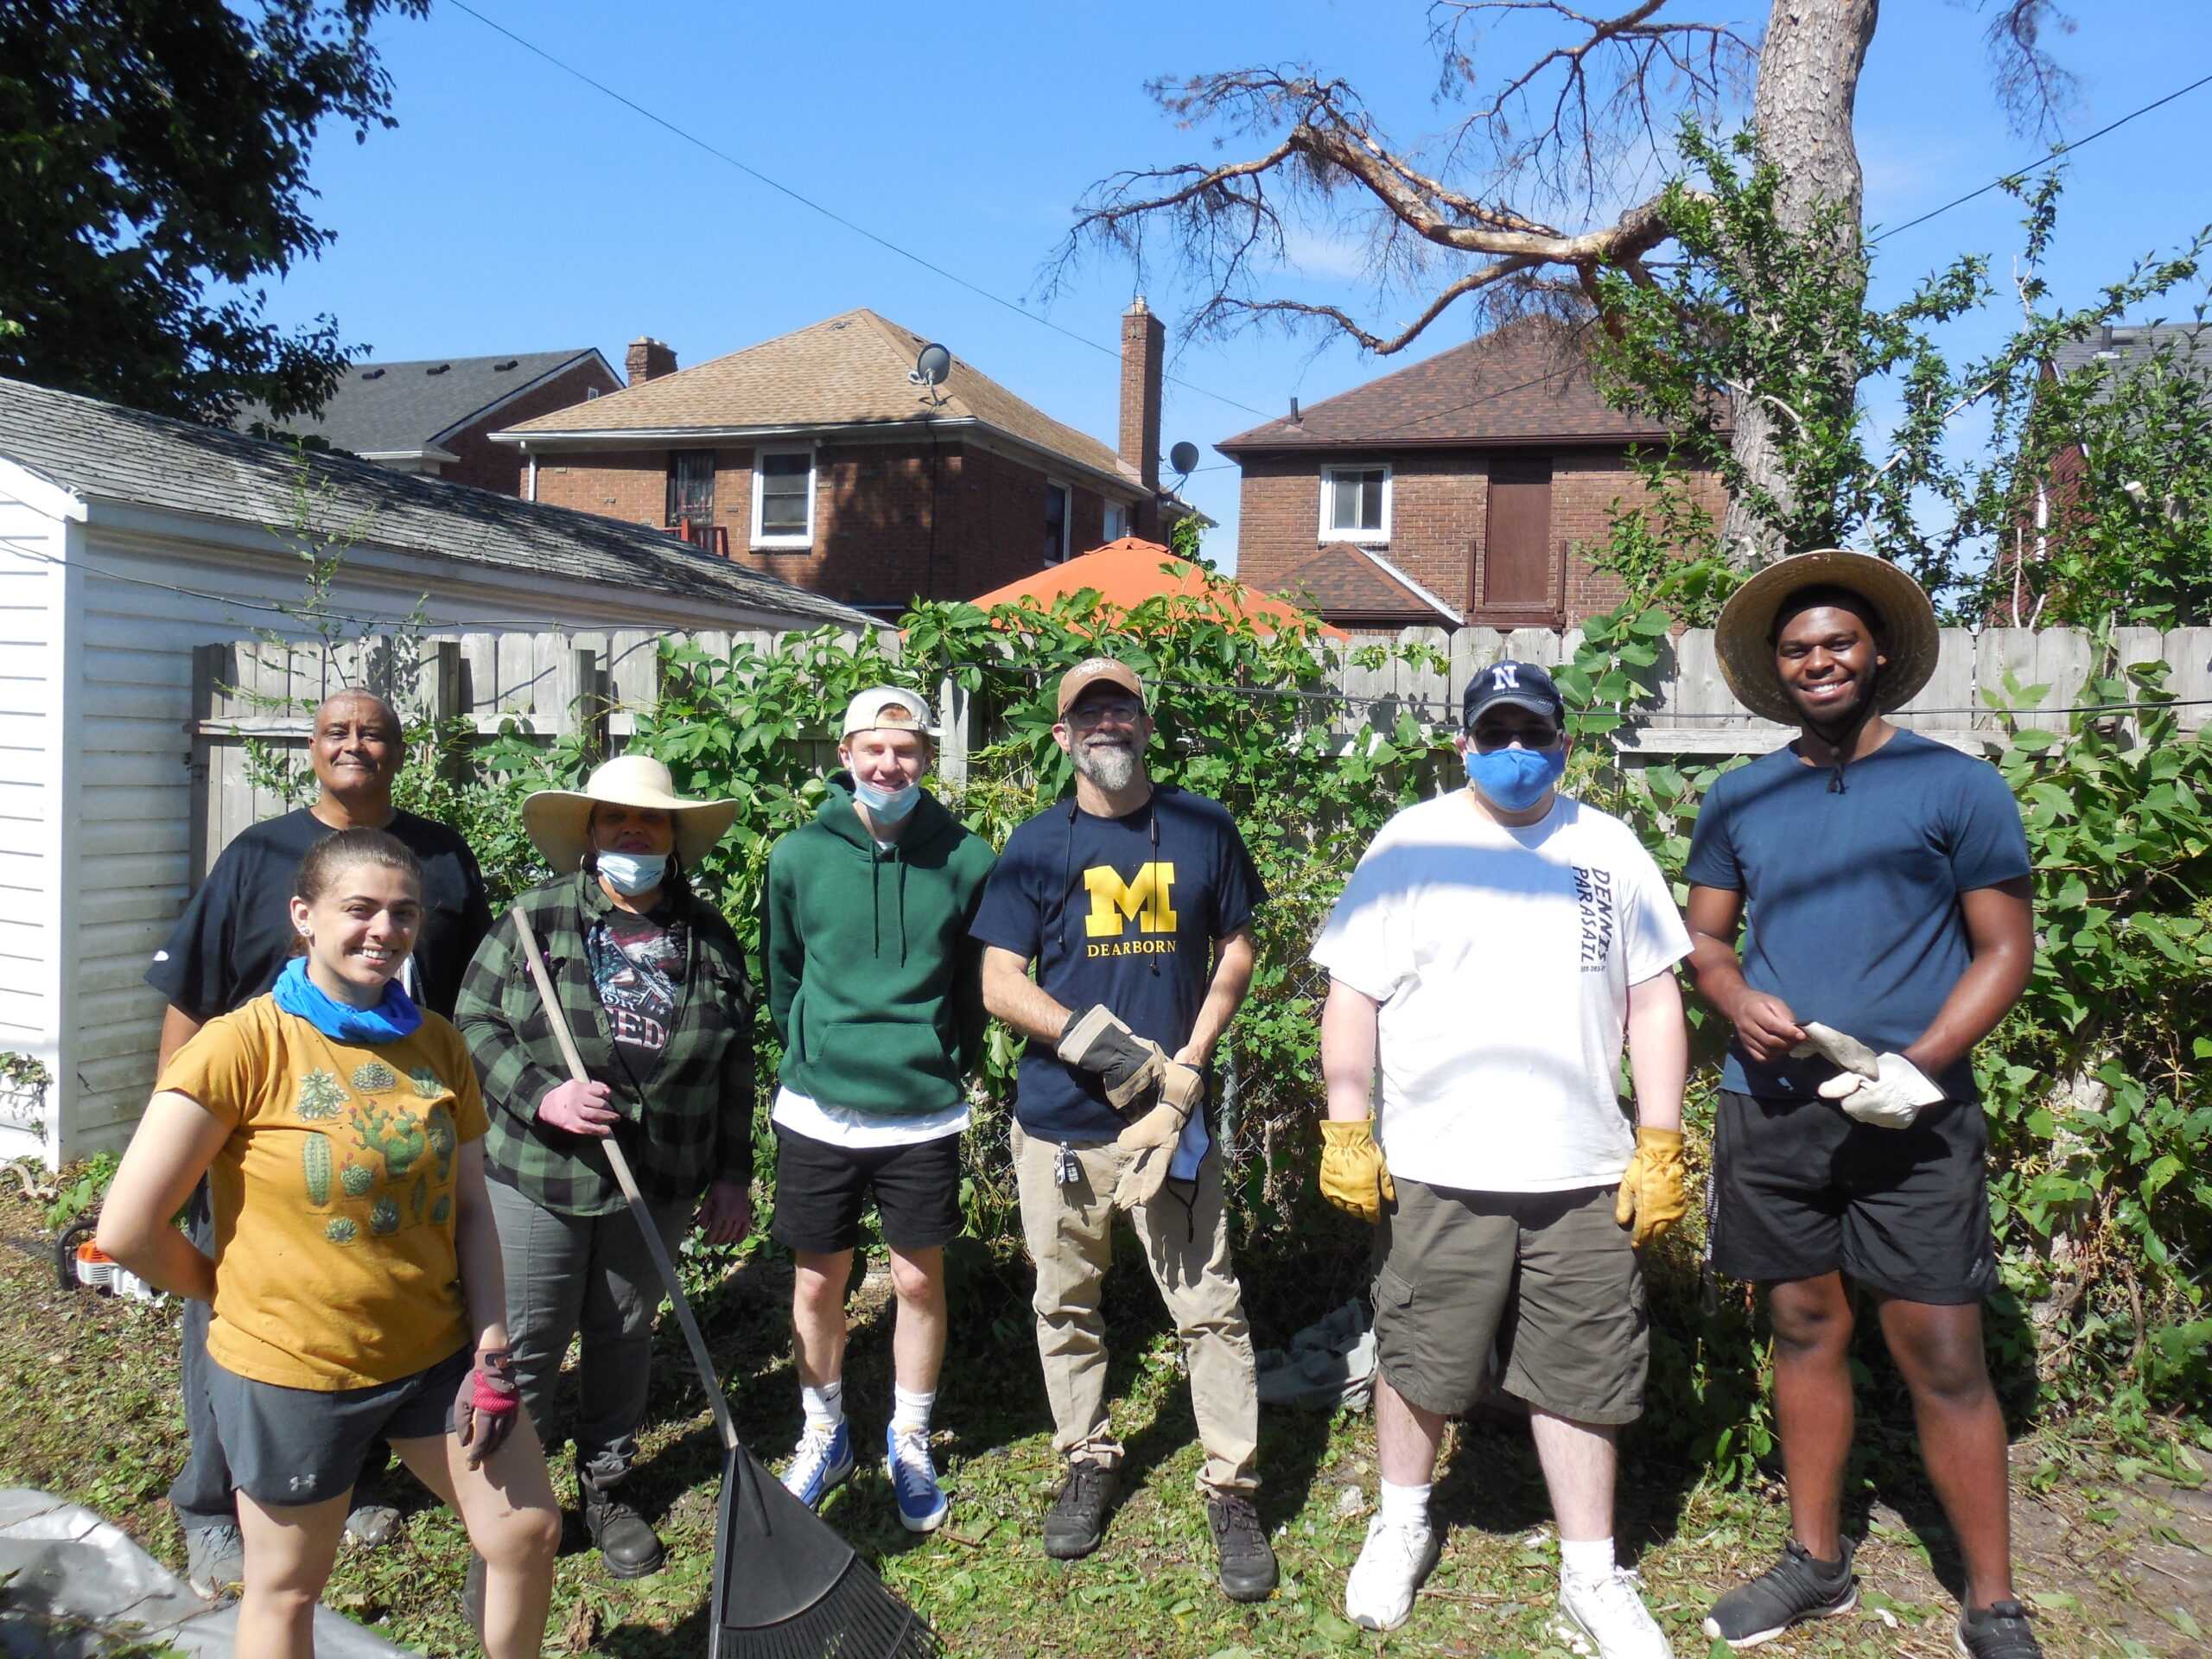 """Alley cleanup in the west McNichols area. Pictured (left to right): Amina Mikula, UM-Dearborn student, Robert Turner, resident, Anne Peeples, resident, Solomon Draus, UD-Jesuit student, Charles """"Chuck"""" Rivers, resident and president of the Neighborhood Association, Peyton Lynch, UM-Dearborn student, and Jacques Jones, UM-Dearborn student. Image courtesy: Paul Draus"""